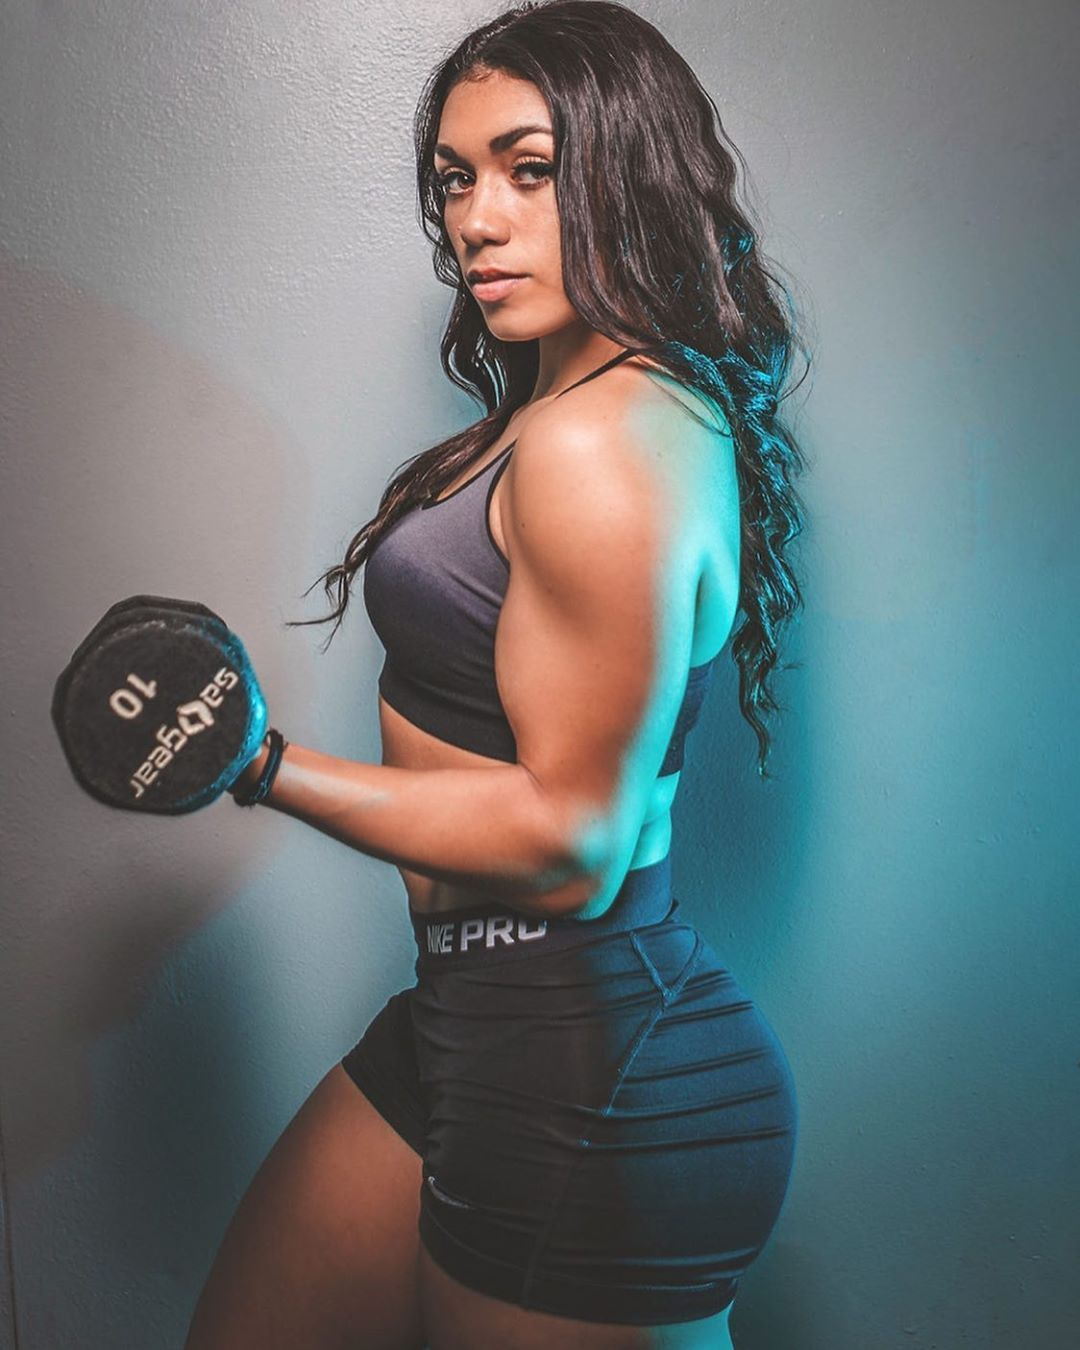 Who wanna get fit with me? 💪🏽 ——————————————— 📸: @robbatista_studios  #fitlife #fitness #fitnesskc #...